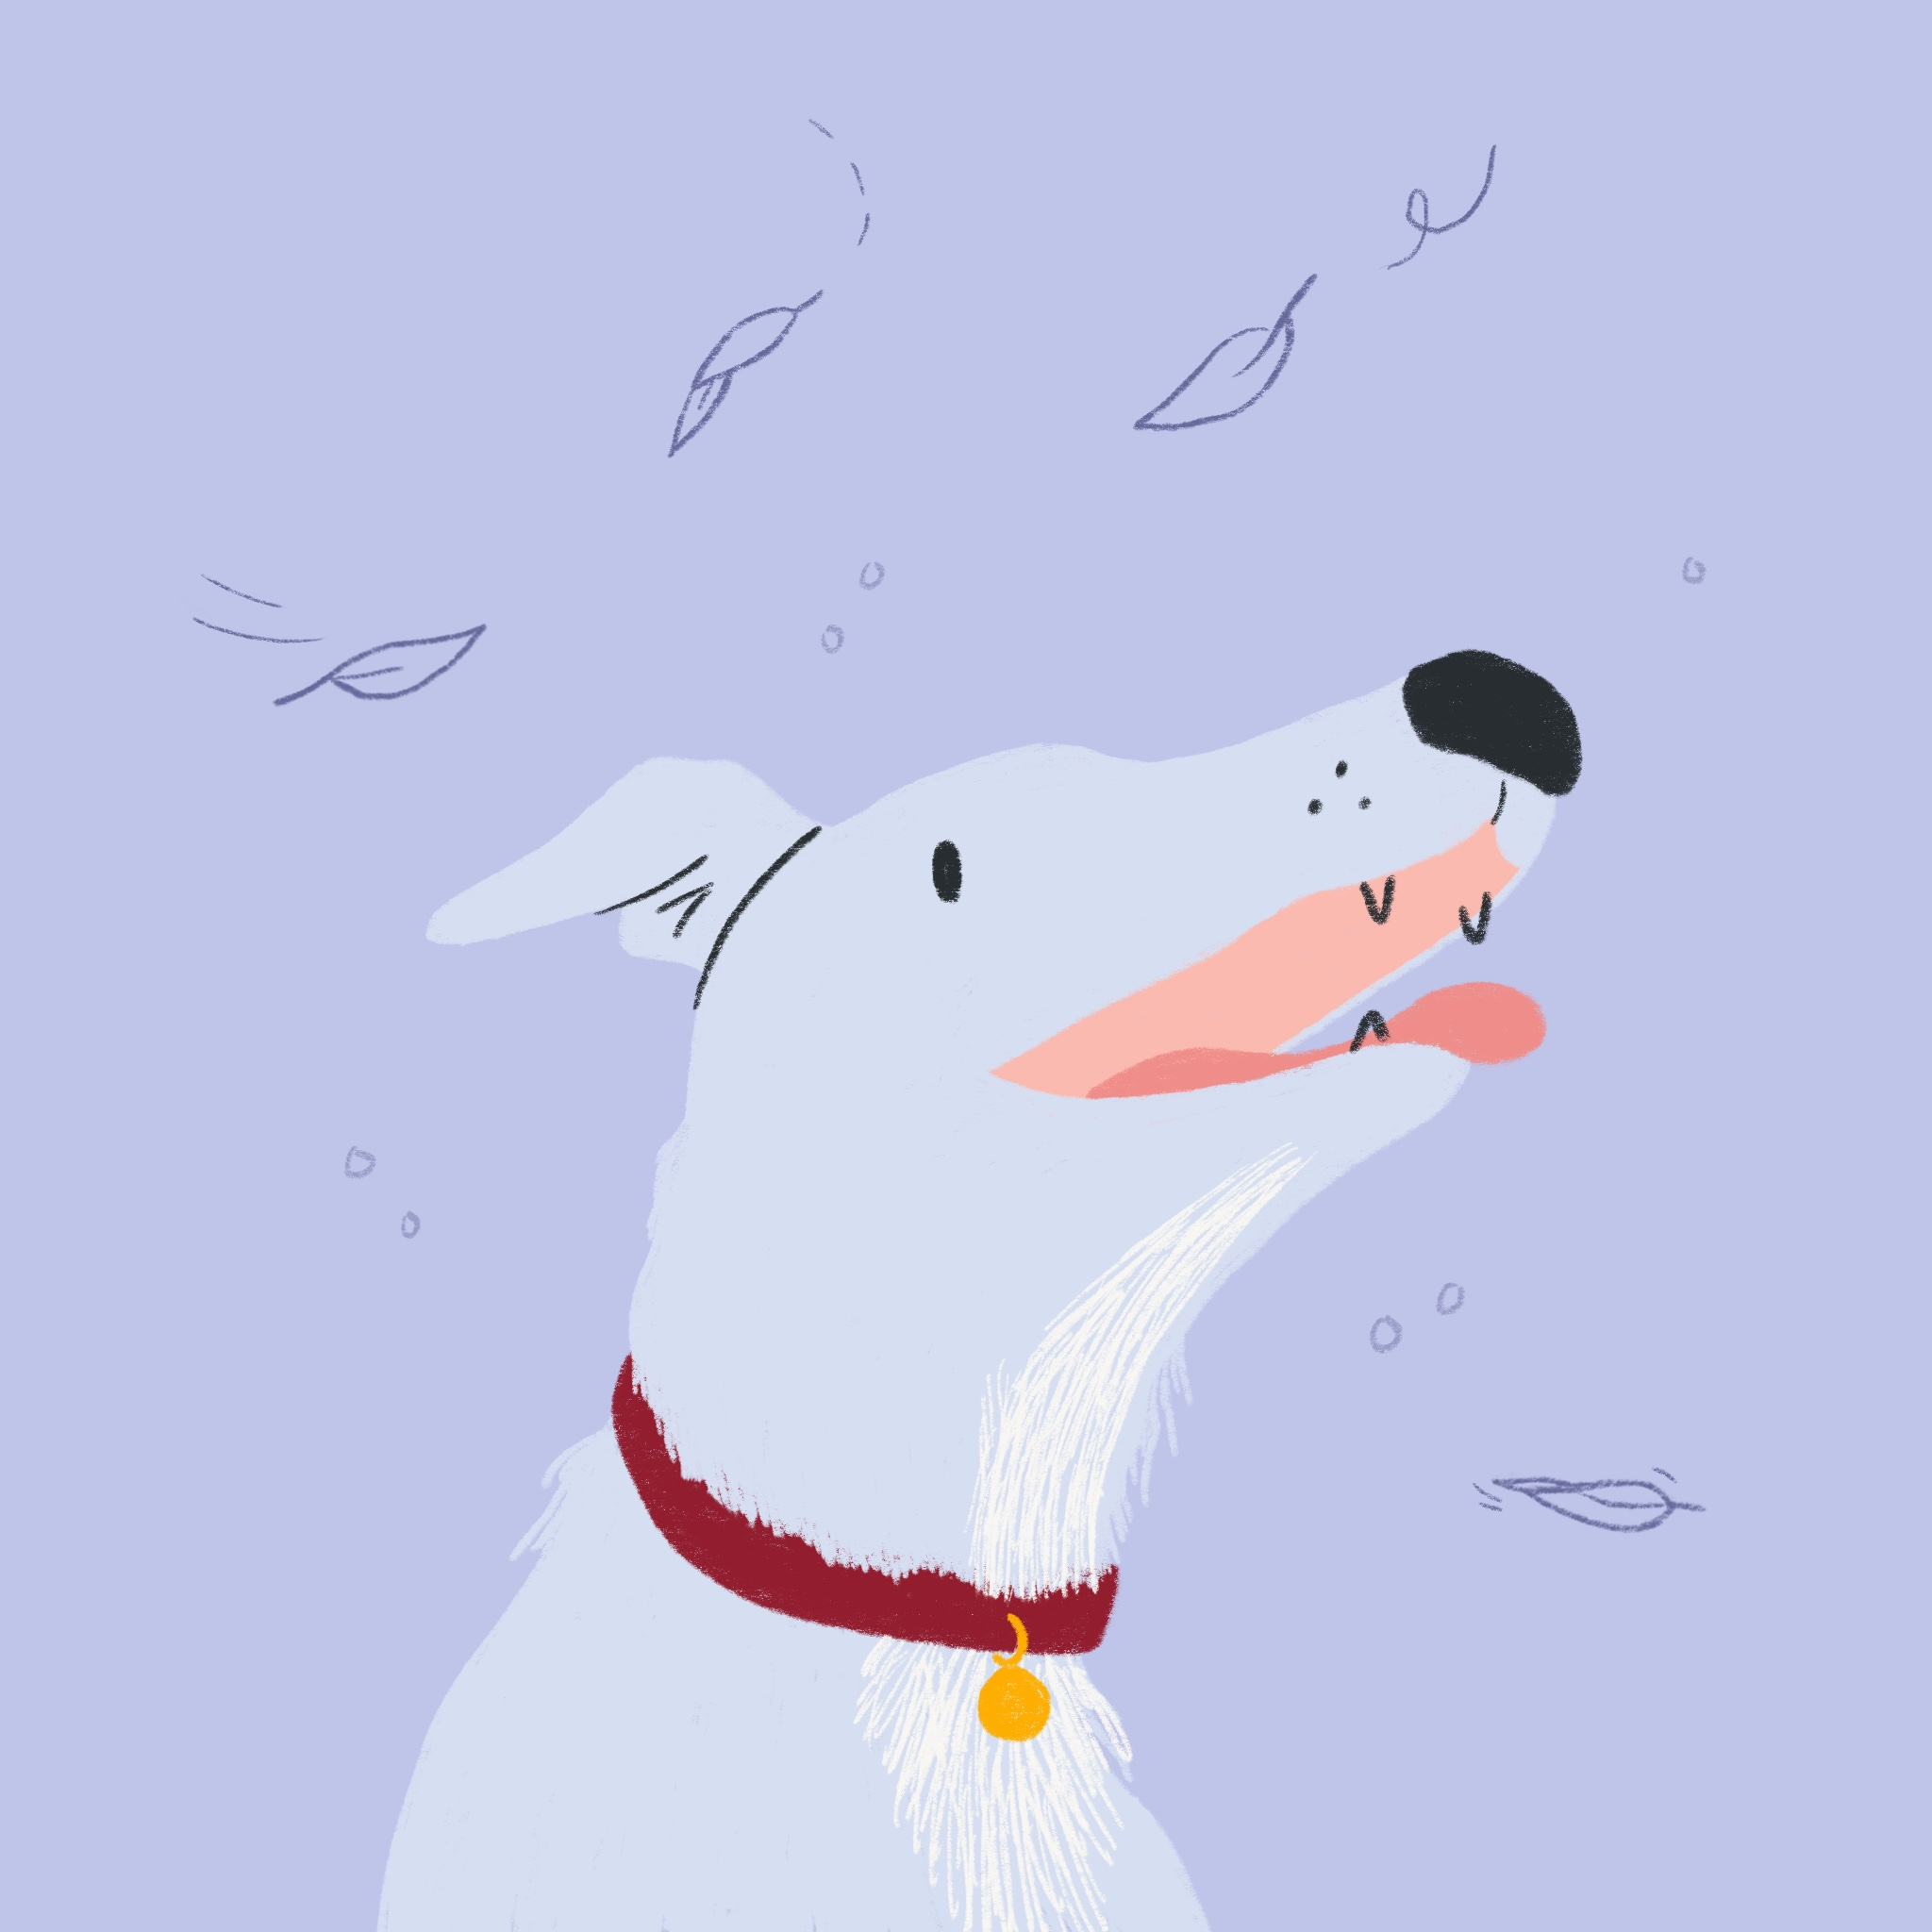 An illustration of a dog smiling and looking at falling leaves